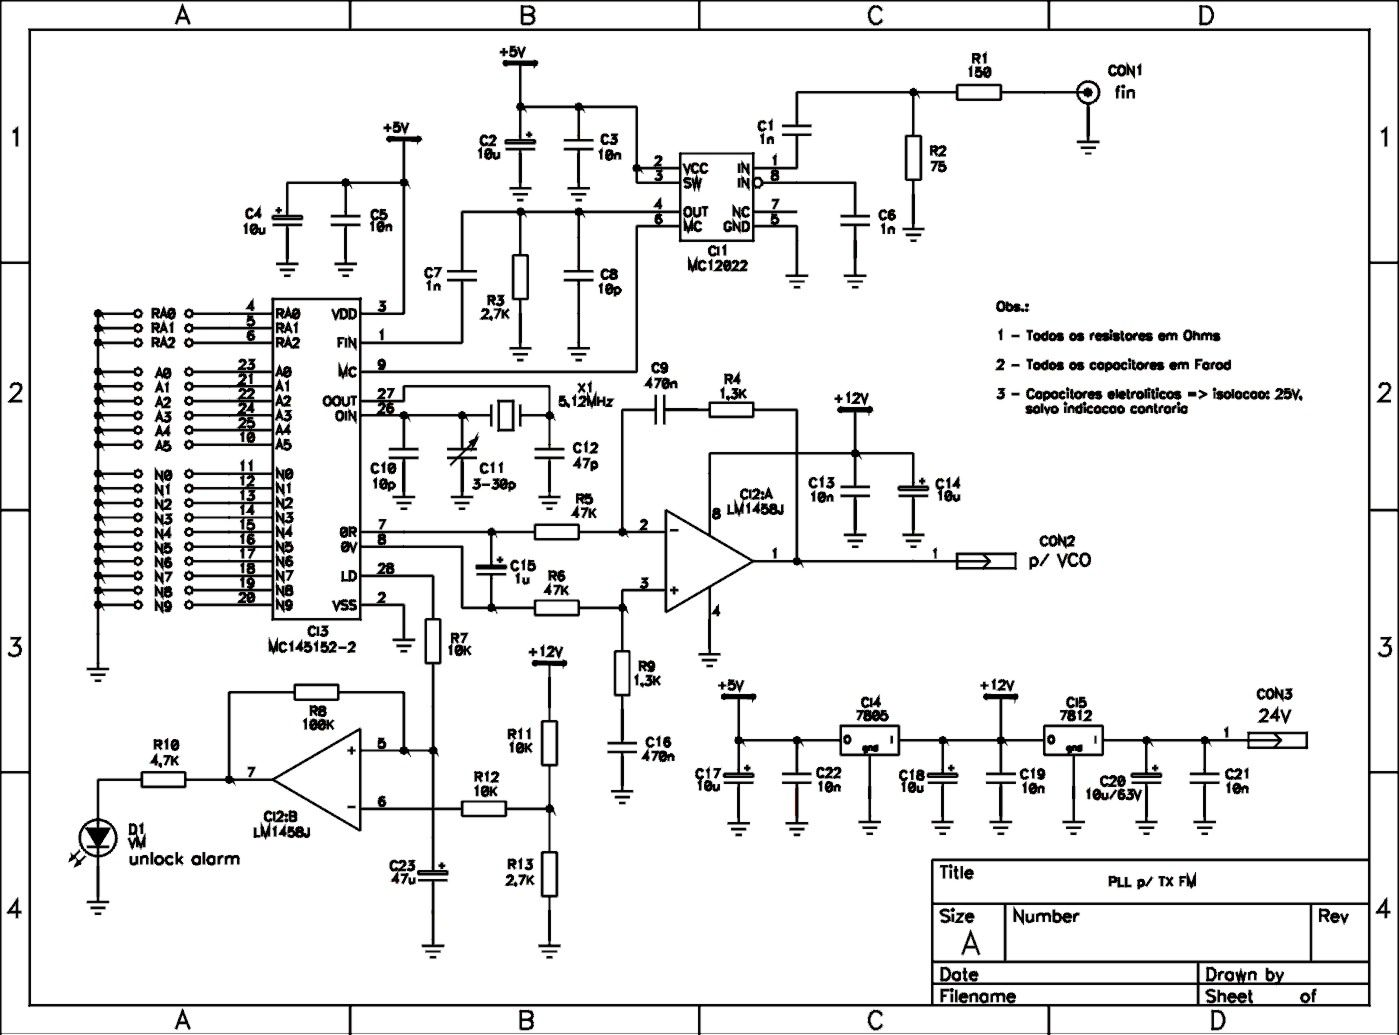 Ic 565 Application Datasheet Lm565 Fsk Demodulator Circuit Design Electronic Components Circle Pll With How Does This Work